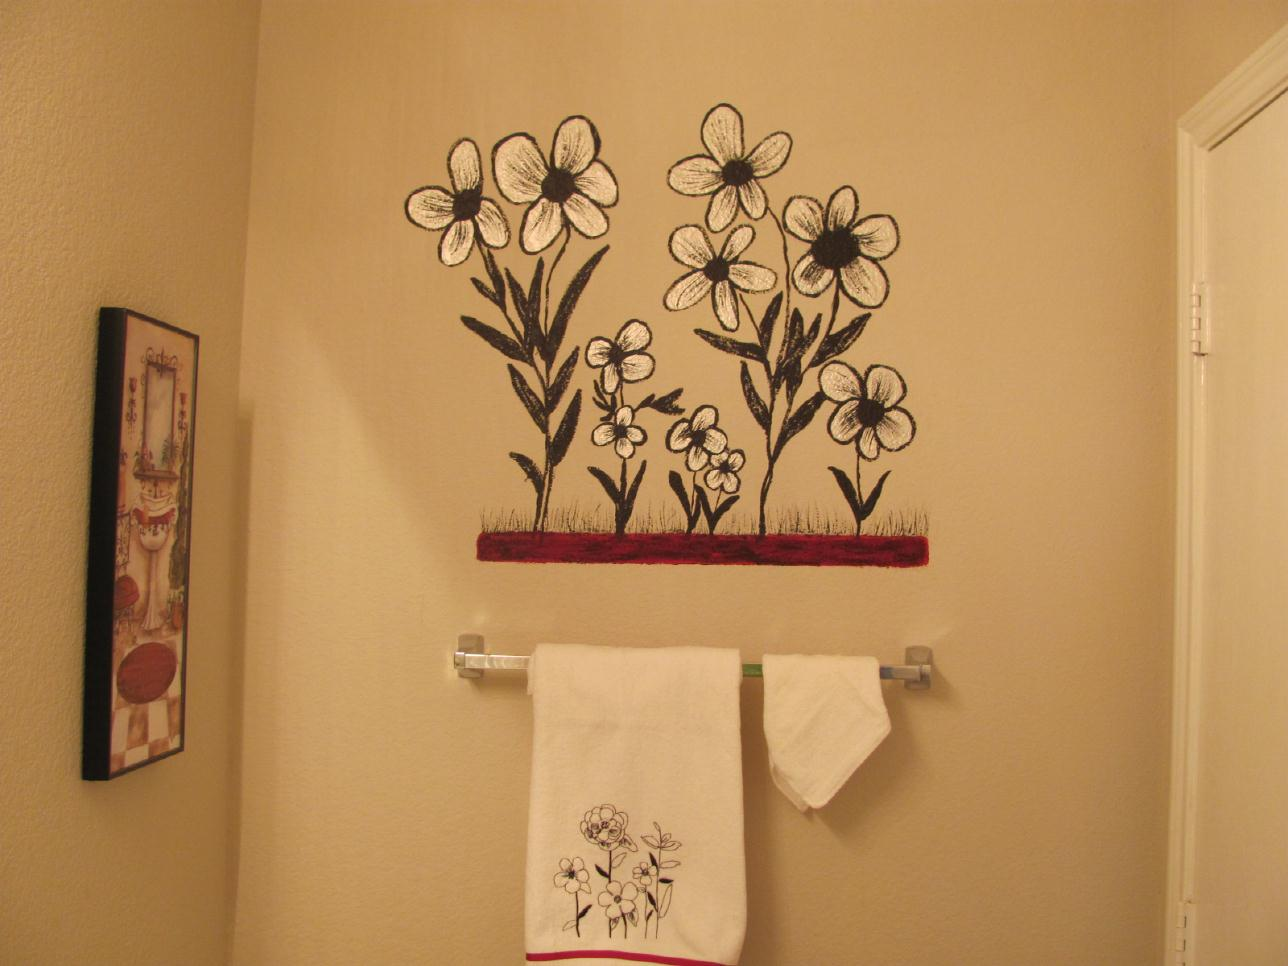 Dolls Are My Canvas Within My Soul Paint Flowers On Bathroom Wall